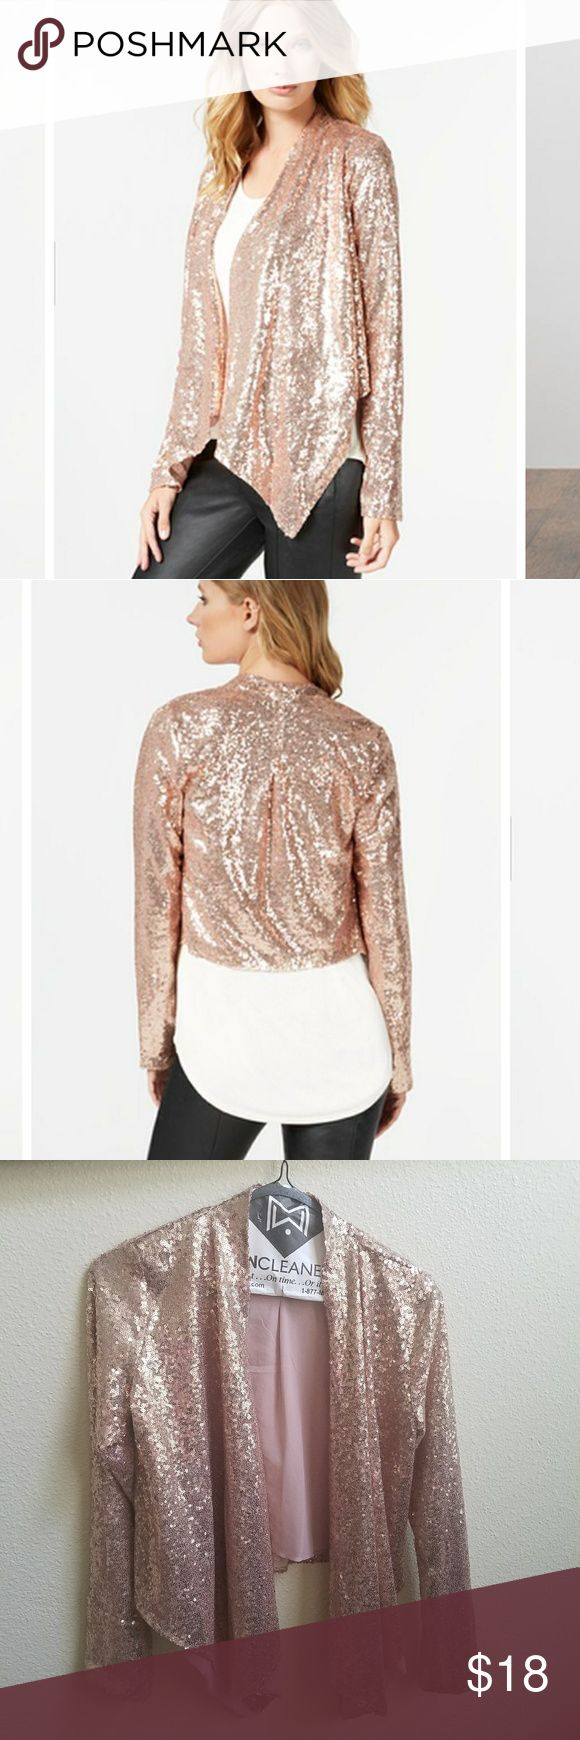 Rose Gold Sequin Blazer Sequin blazer  Drape open front  Full lining Very lightweight  Great statement piece to wear going out Pair with skinny jeans or even shorts  100% nylon  Perfect condition, only worn once for a few hours on a cruise Double Zero Jackets & Coats Blazers